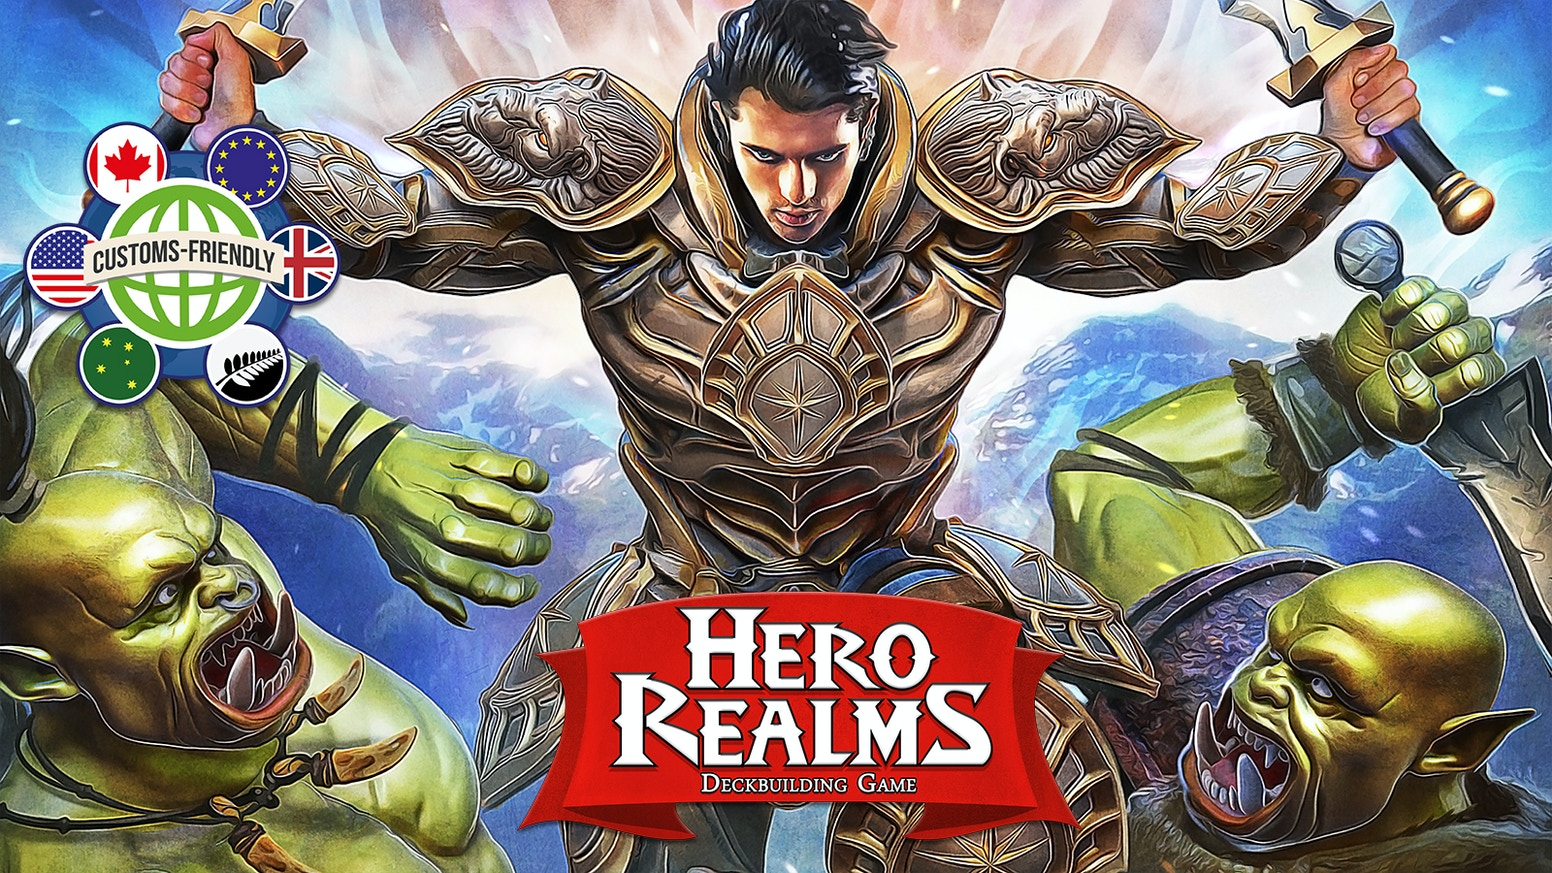 A deckbuilding game from the makers of Star Realms.